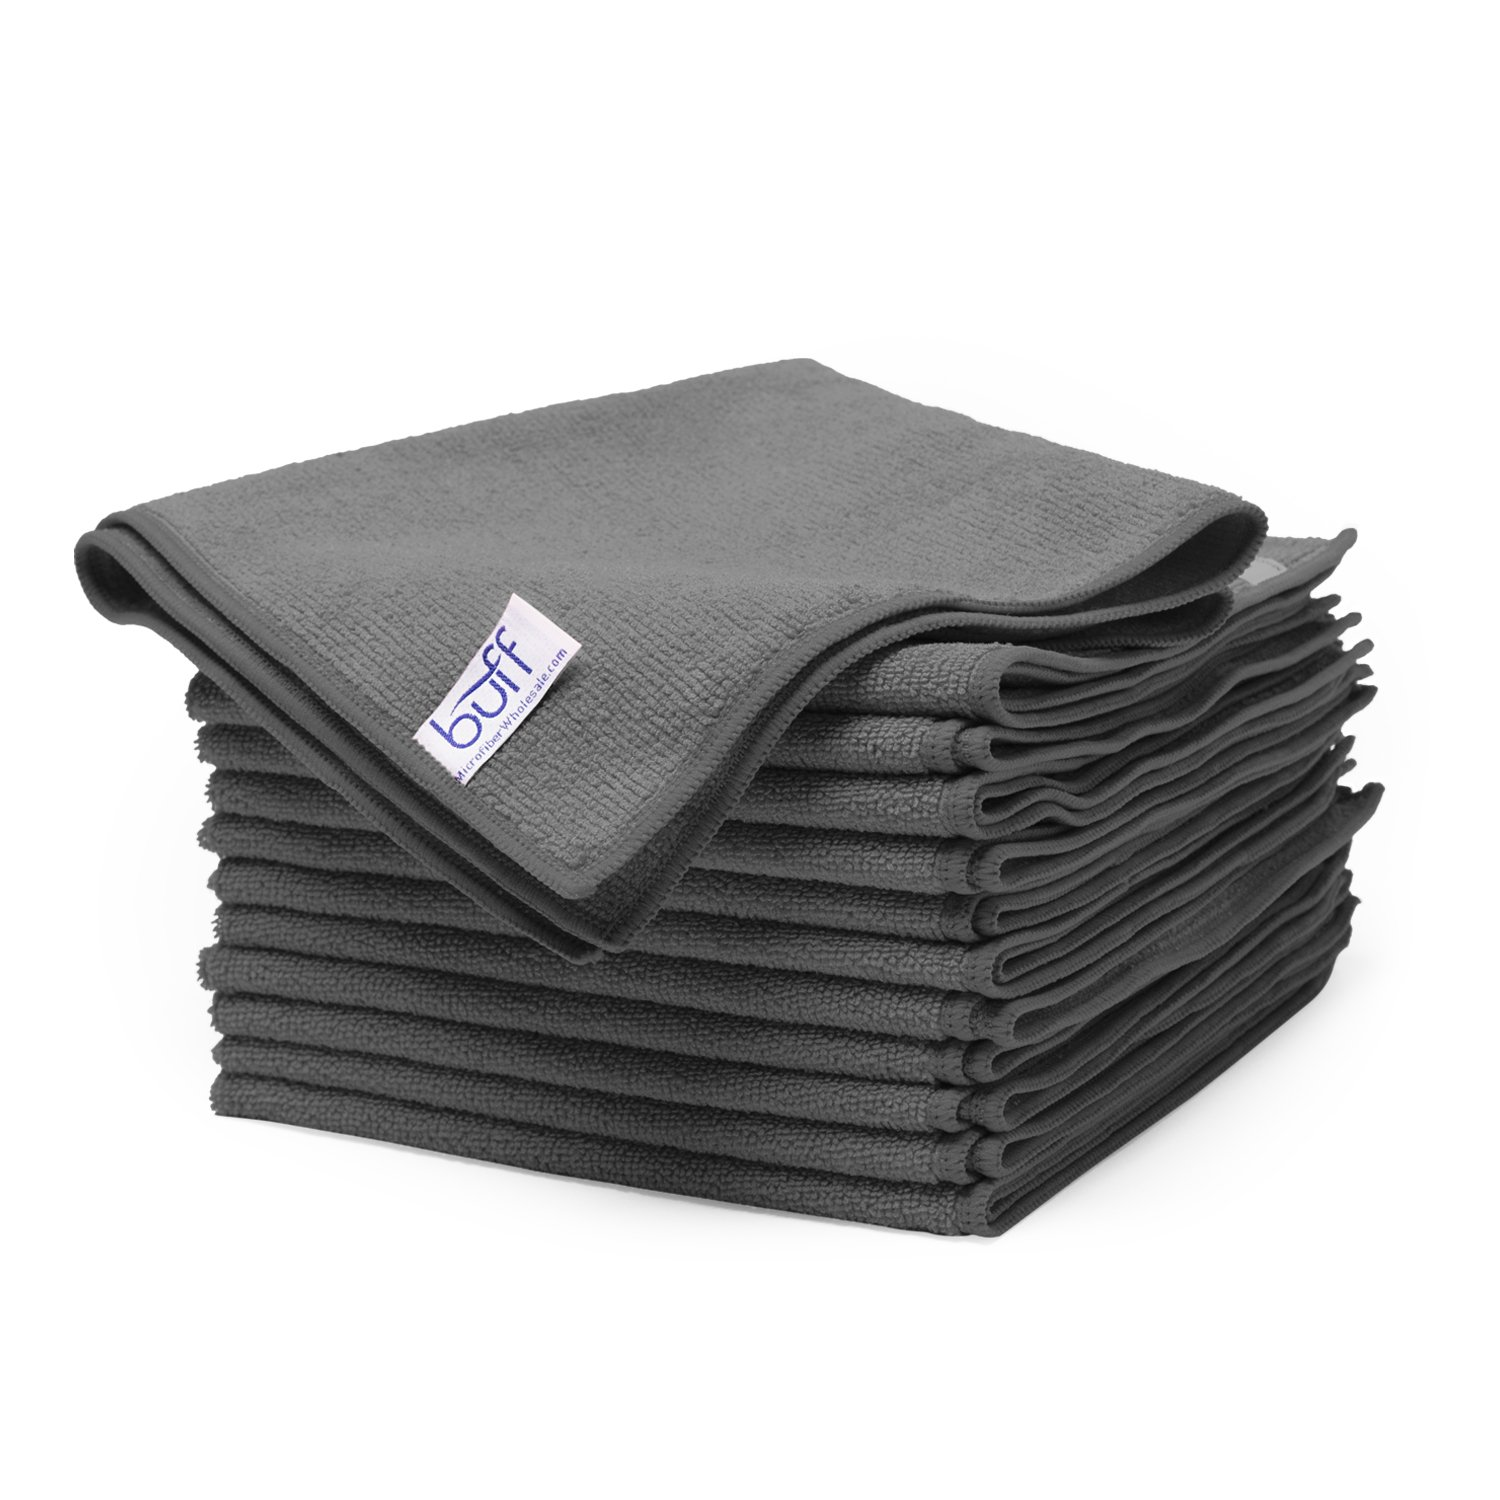 Buff Pro Multi-Surface Microfiber Towel - 12 Pack| Premium Microfiber | Dust, Scrub, Clean, Polish, Absorb | Large 16'x16' (Black) Absorb | Large 16x16 (Black) Microfiber Wholesale BPMSMT1616